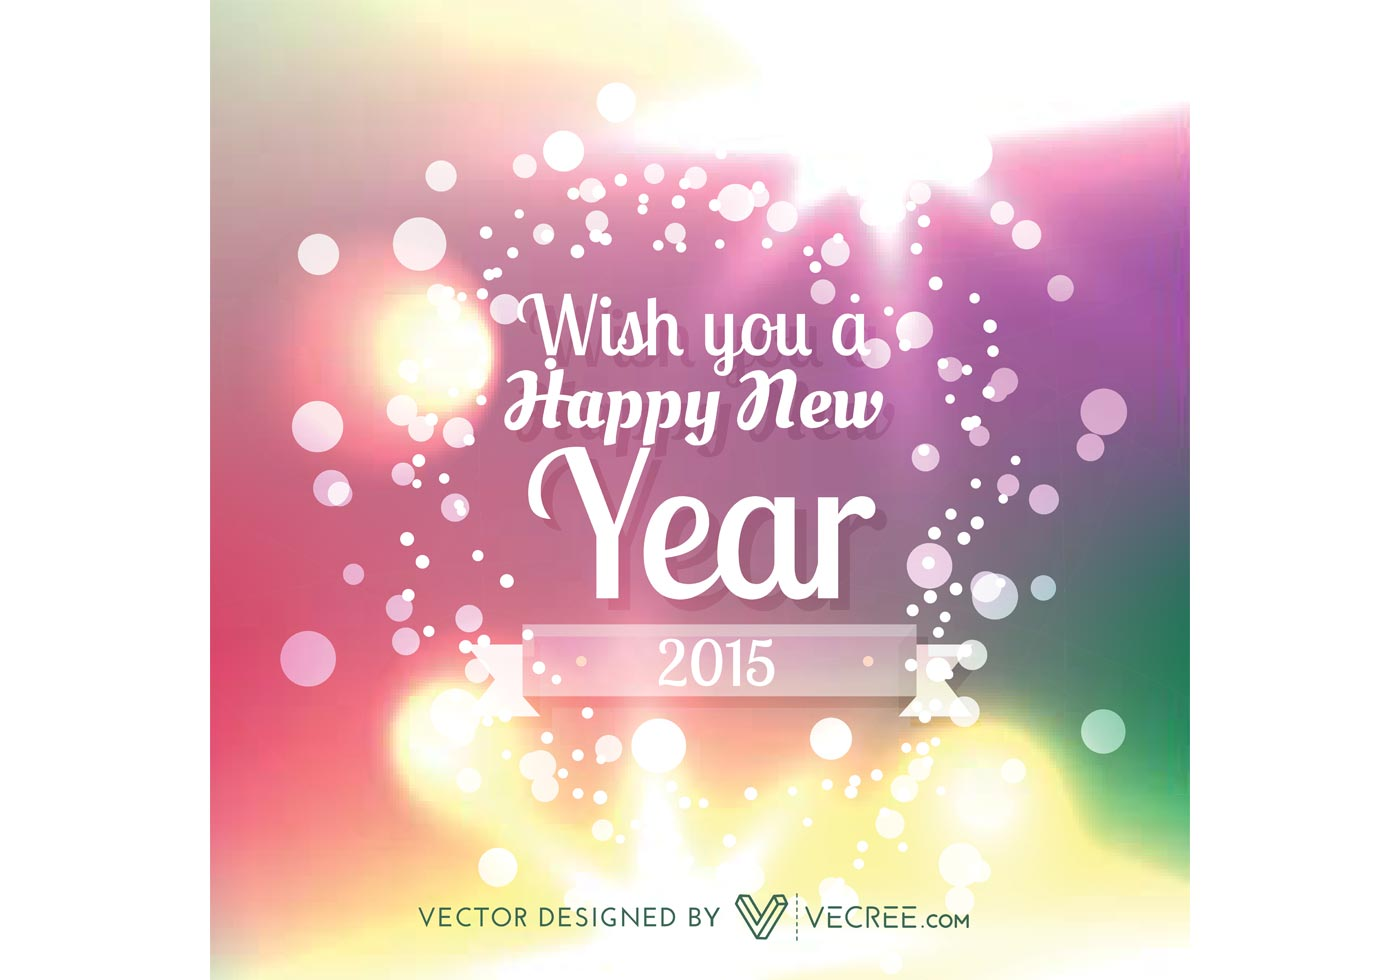 Happy New Year 2015 Vector Design Wallpaper Like Wallpapers